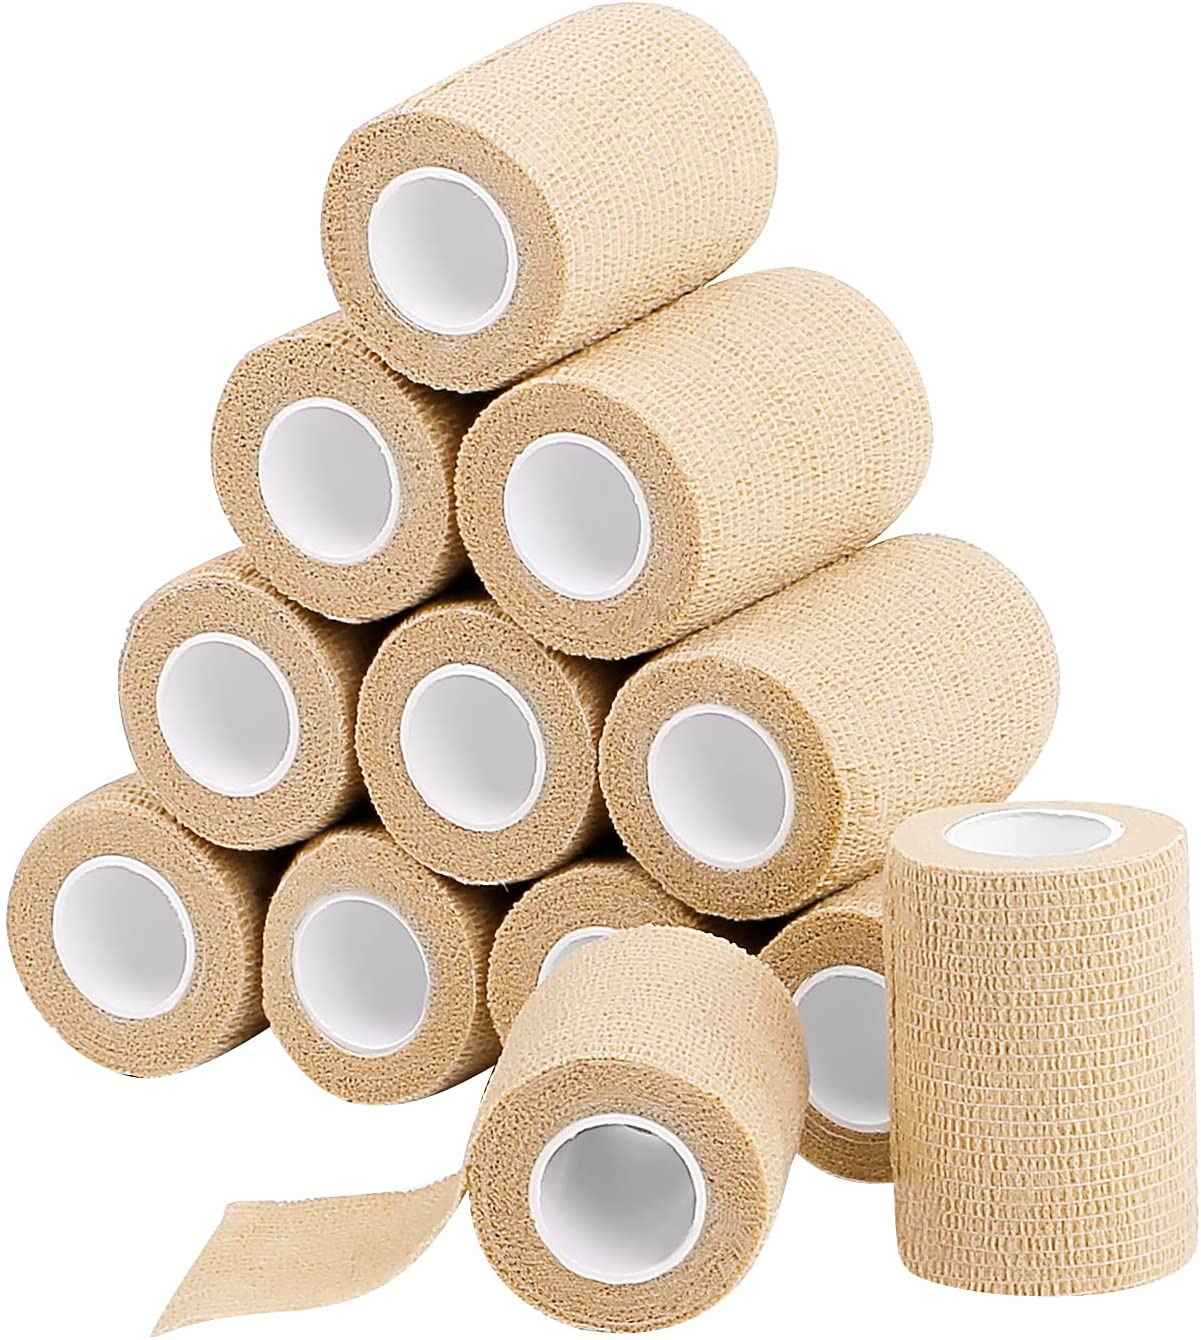 12 Pack Today's only Self Adherent Cohesive Wrap Bandages X Yards 3 5 Minneapolis Mall Inches